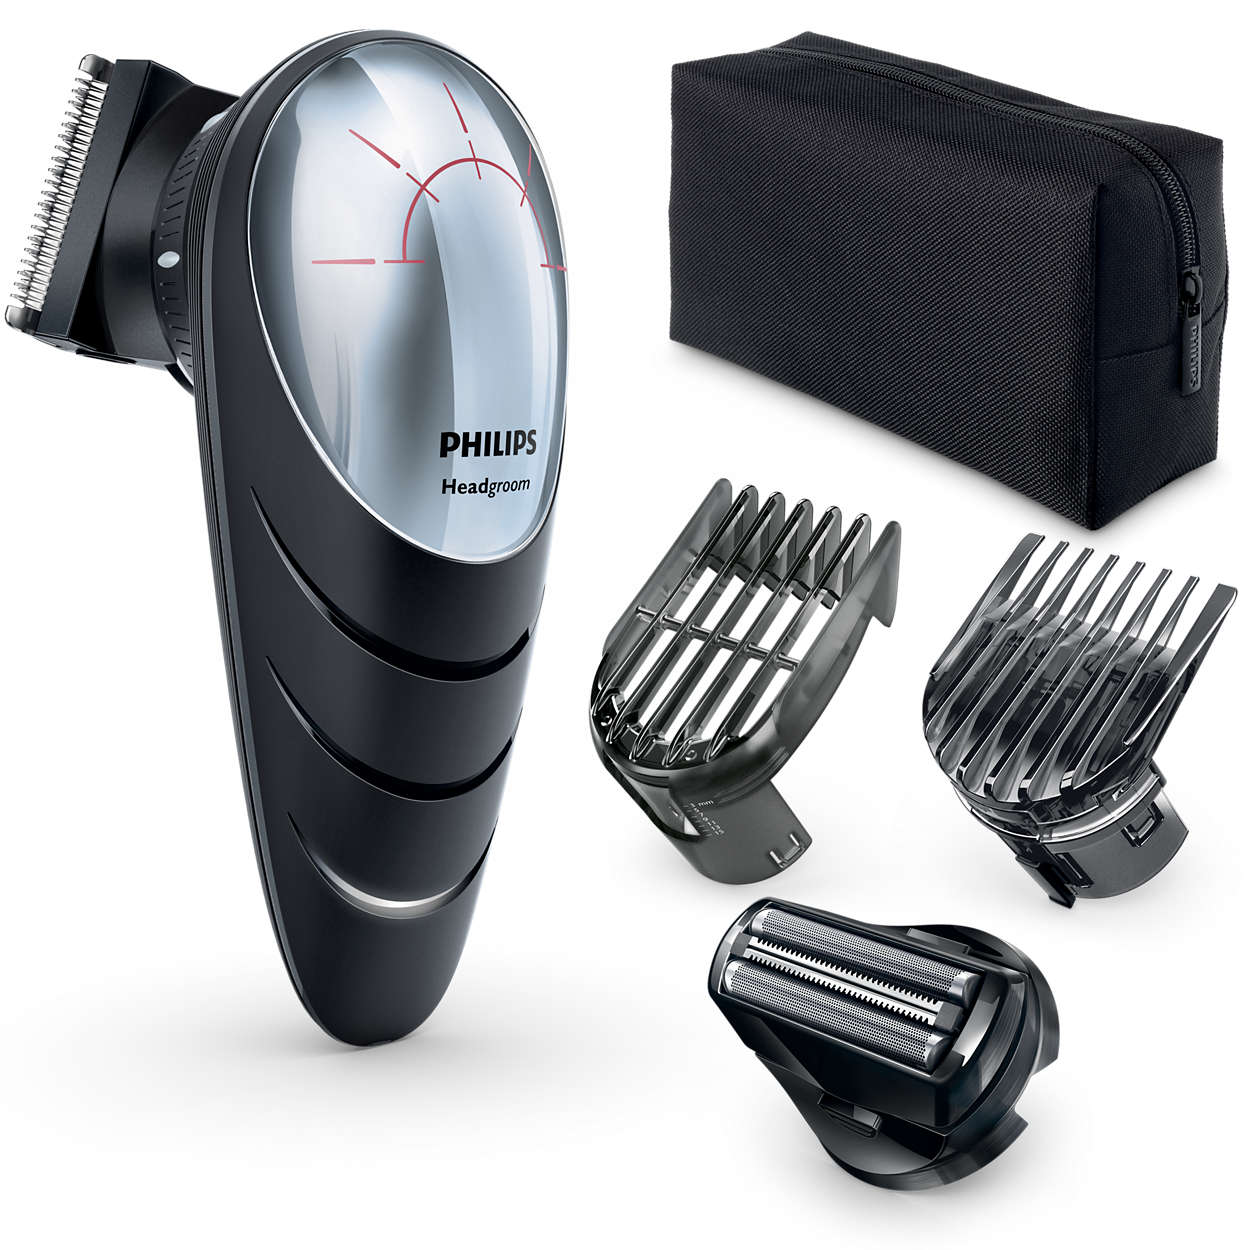 Do it yourself hair clipper qc558032 philips shave your own head even in hard to reach areas solutioingenieria Choice Image